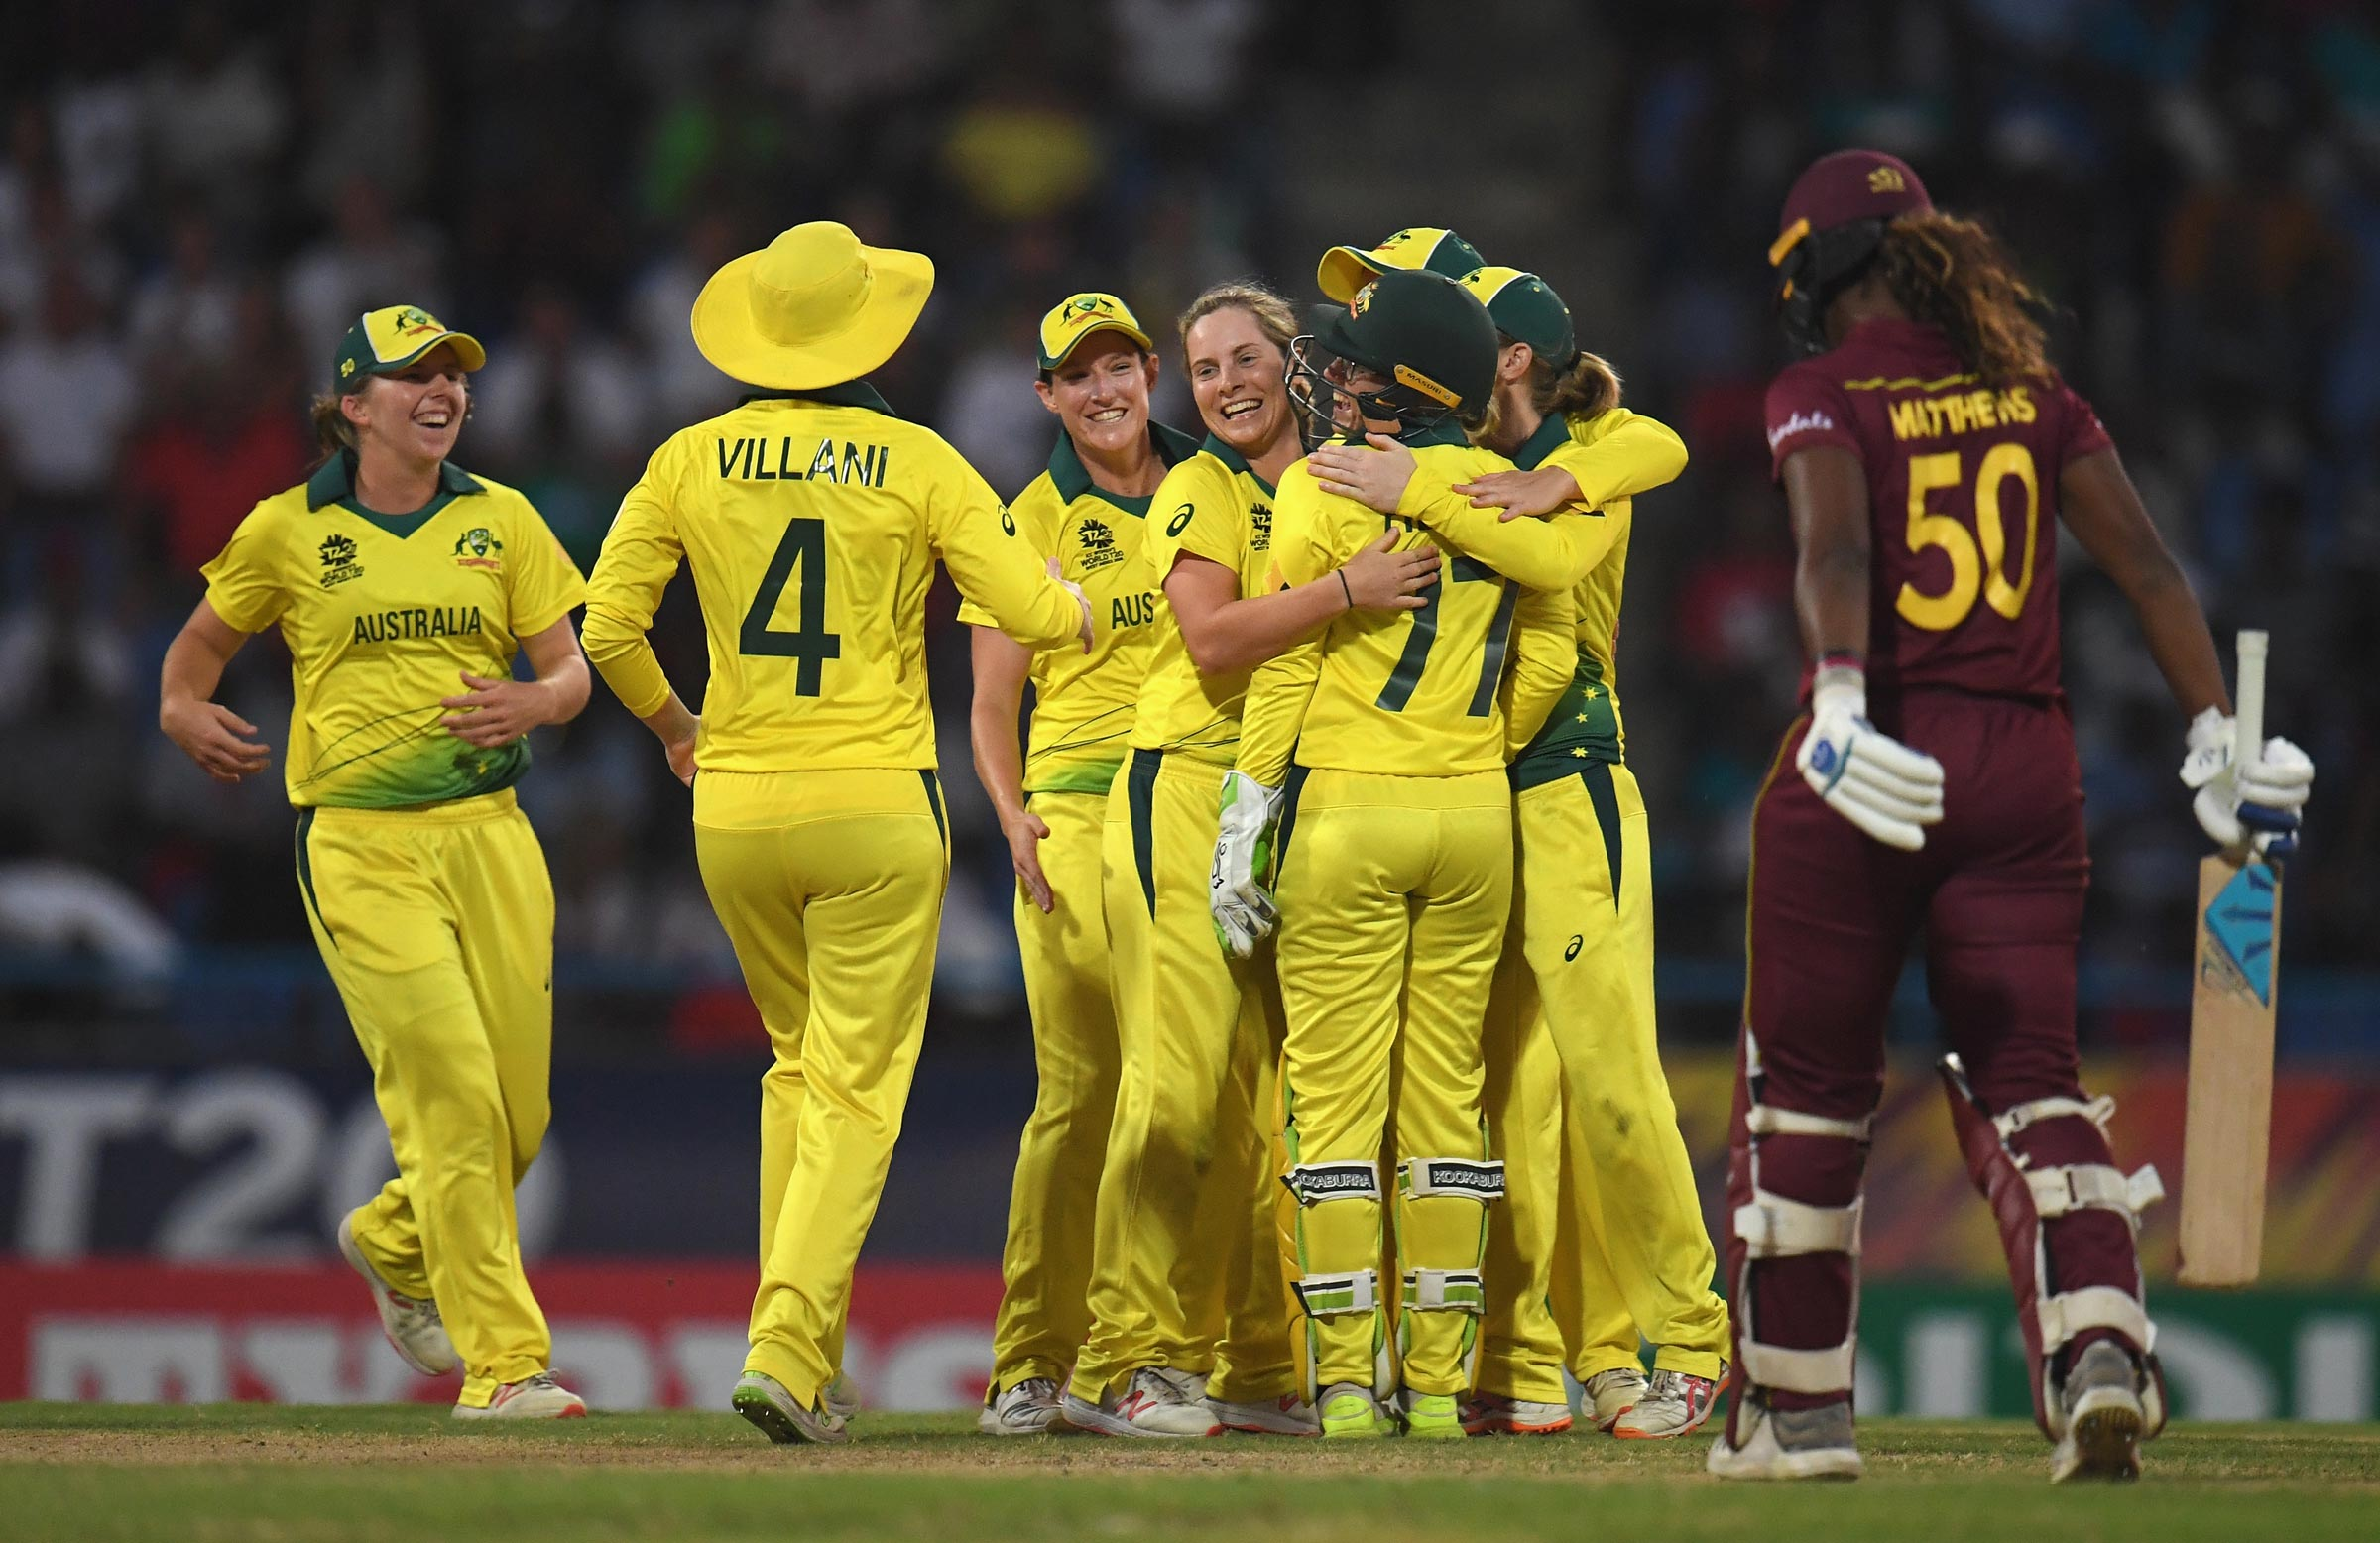 Australia seal their spot in the World Cup final // Getty